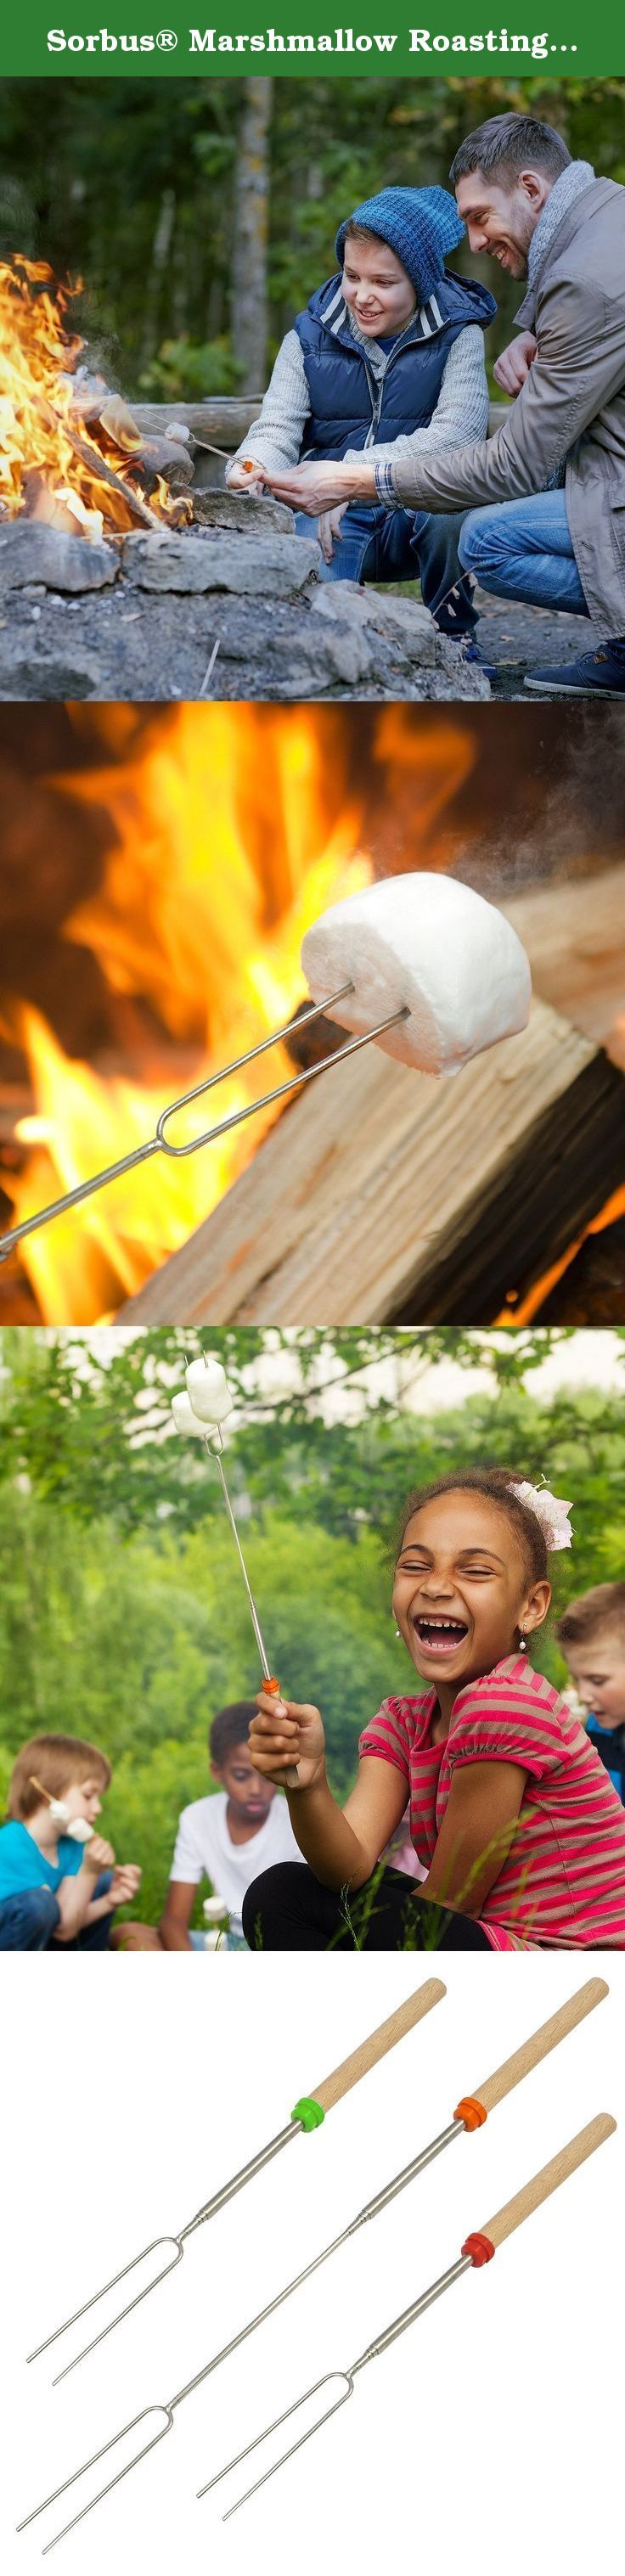 "Sorbus® Marshmallow Roasting Sticks Set - 8 Telescoping Forks and 10 Bamboo Skewers for Making S'mores, Hot Dogs, Camping, or Use as Kids Fireplace Accessory - Includes Canvas Travel Pouch for Travel. Get ready for the ultimate July 4th celebration with Sorbus® Marshmallow Roasting Sticks Set! This set is creatively designed for making s'mores, hot dogs, meat skewers, vegetable skewers, and other outdoor camping foods. It includes 8 telescoping forks that extend to 32.5"" which ensures you..."